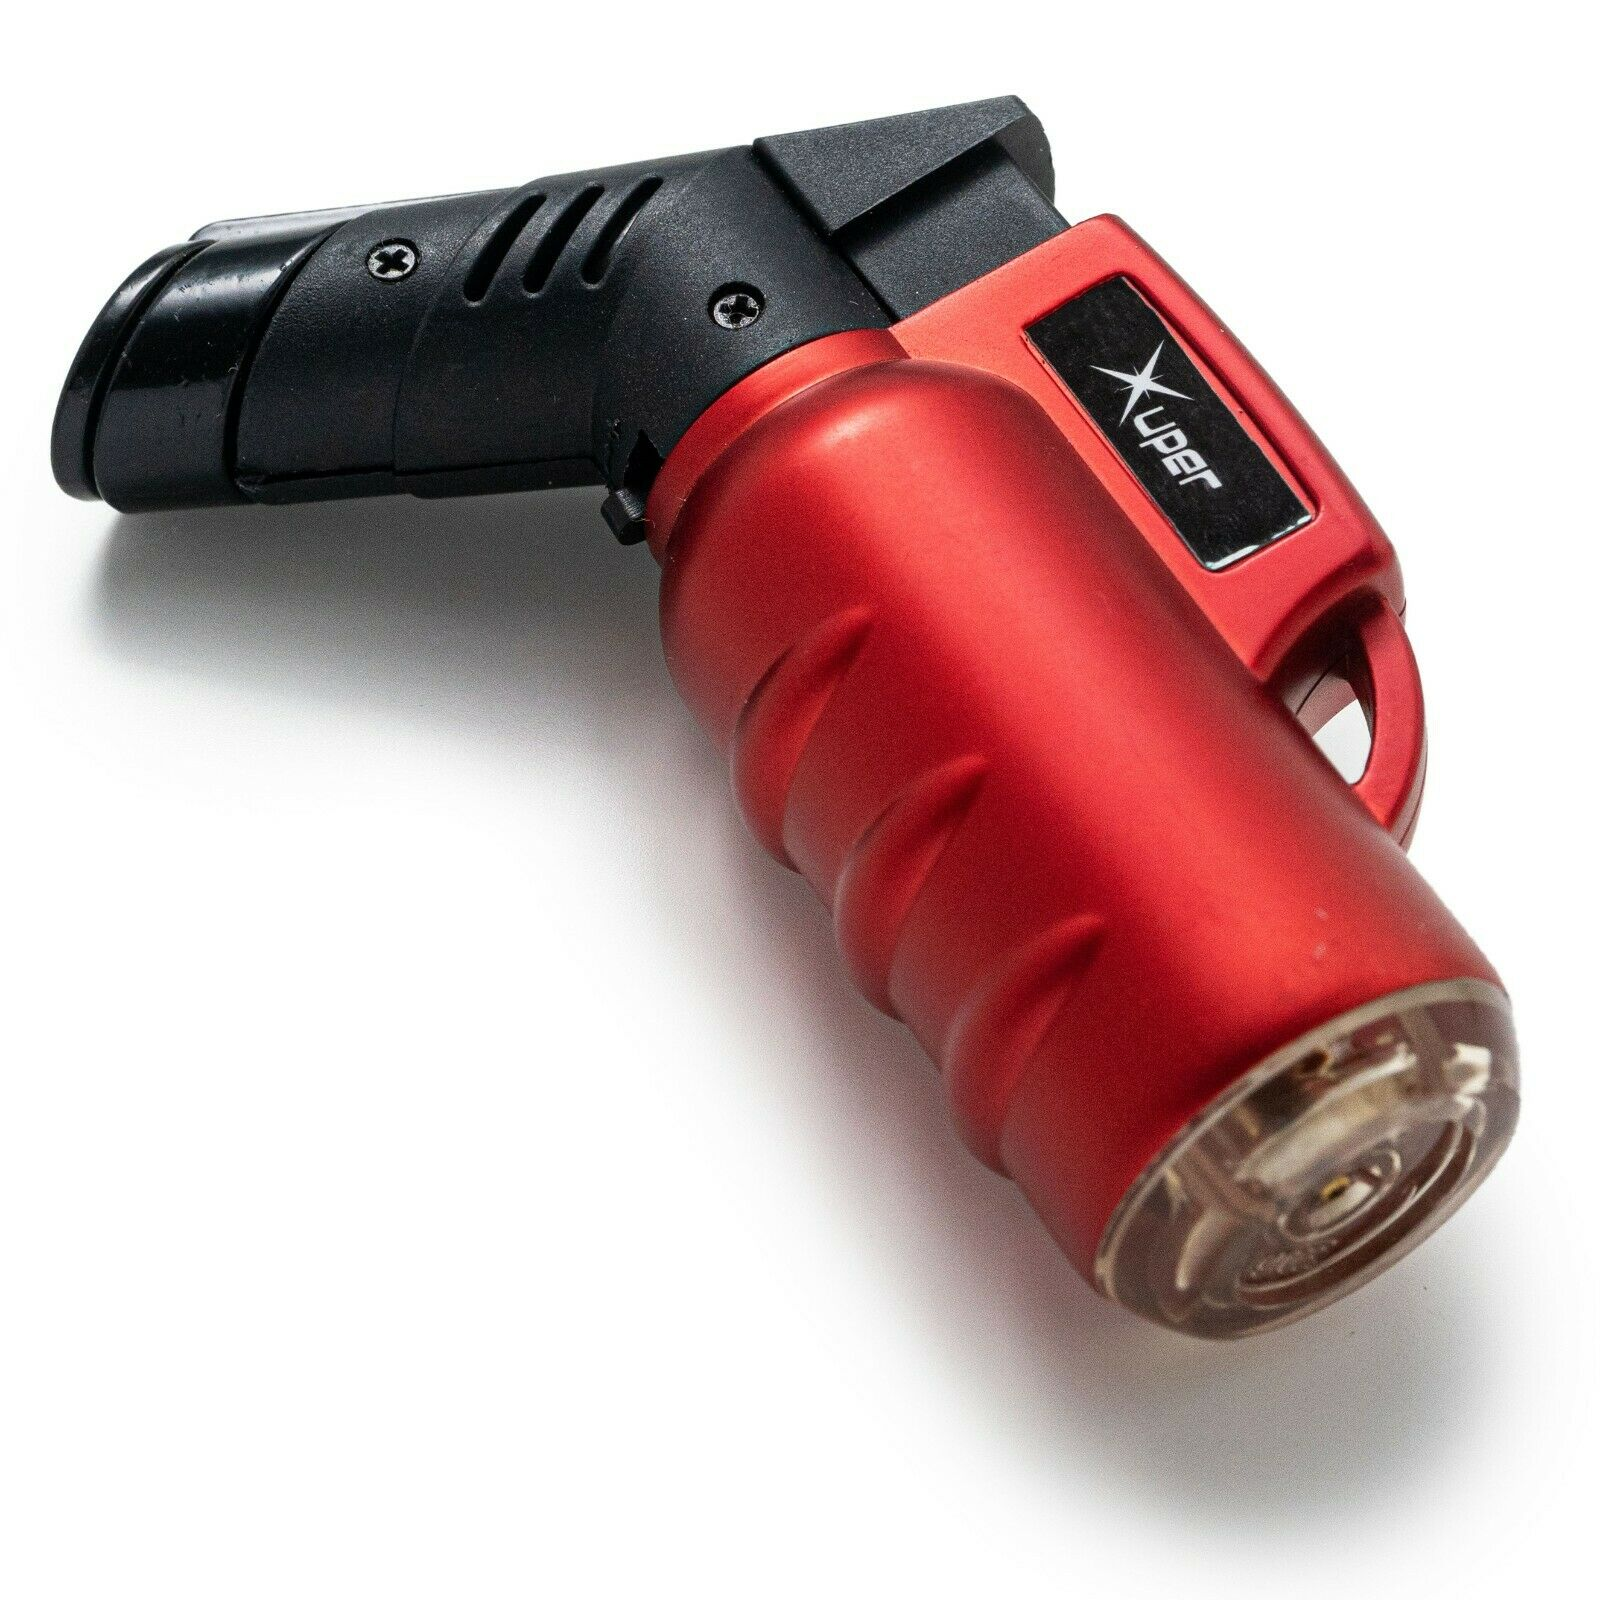 Xuper Metal Mini Jet Torch Lighter Safe Adjustable Flame Ref